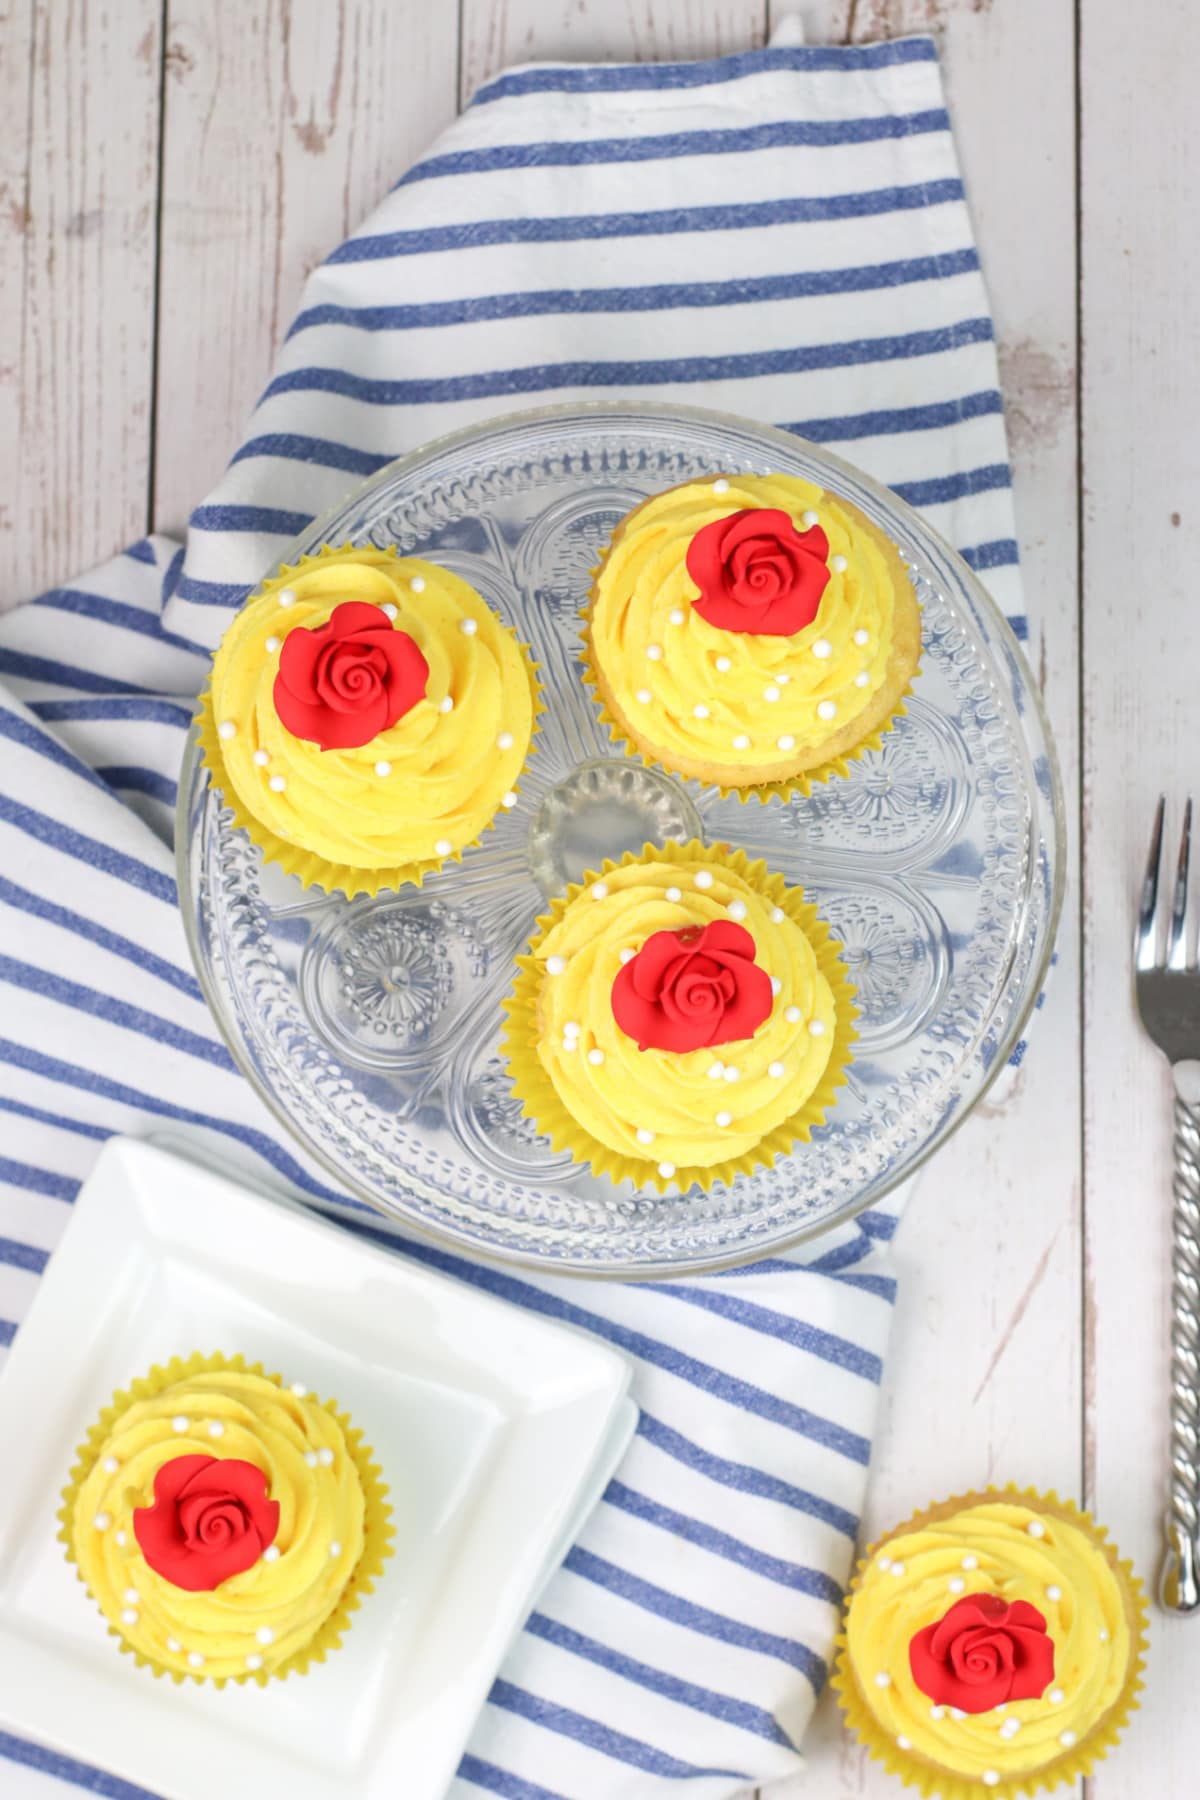 beauty and the beast cupcakes on striped towel